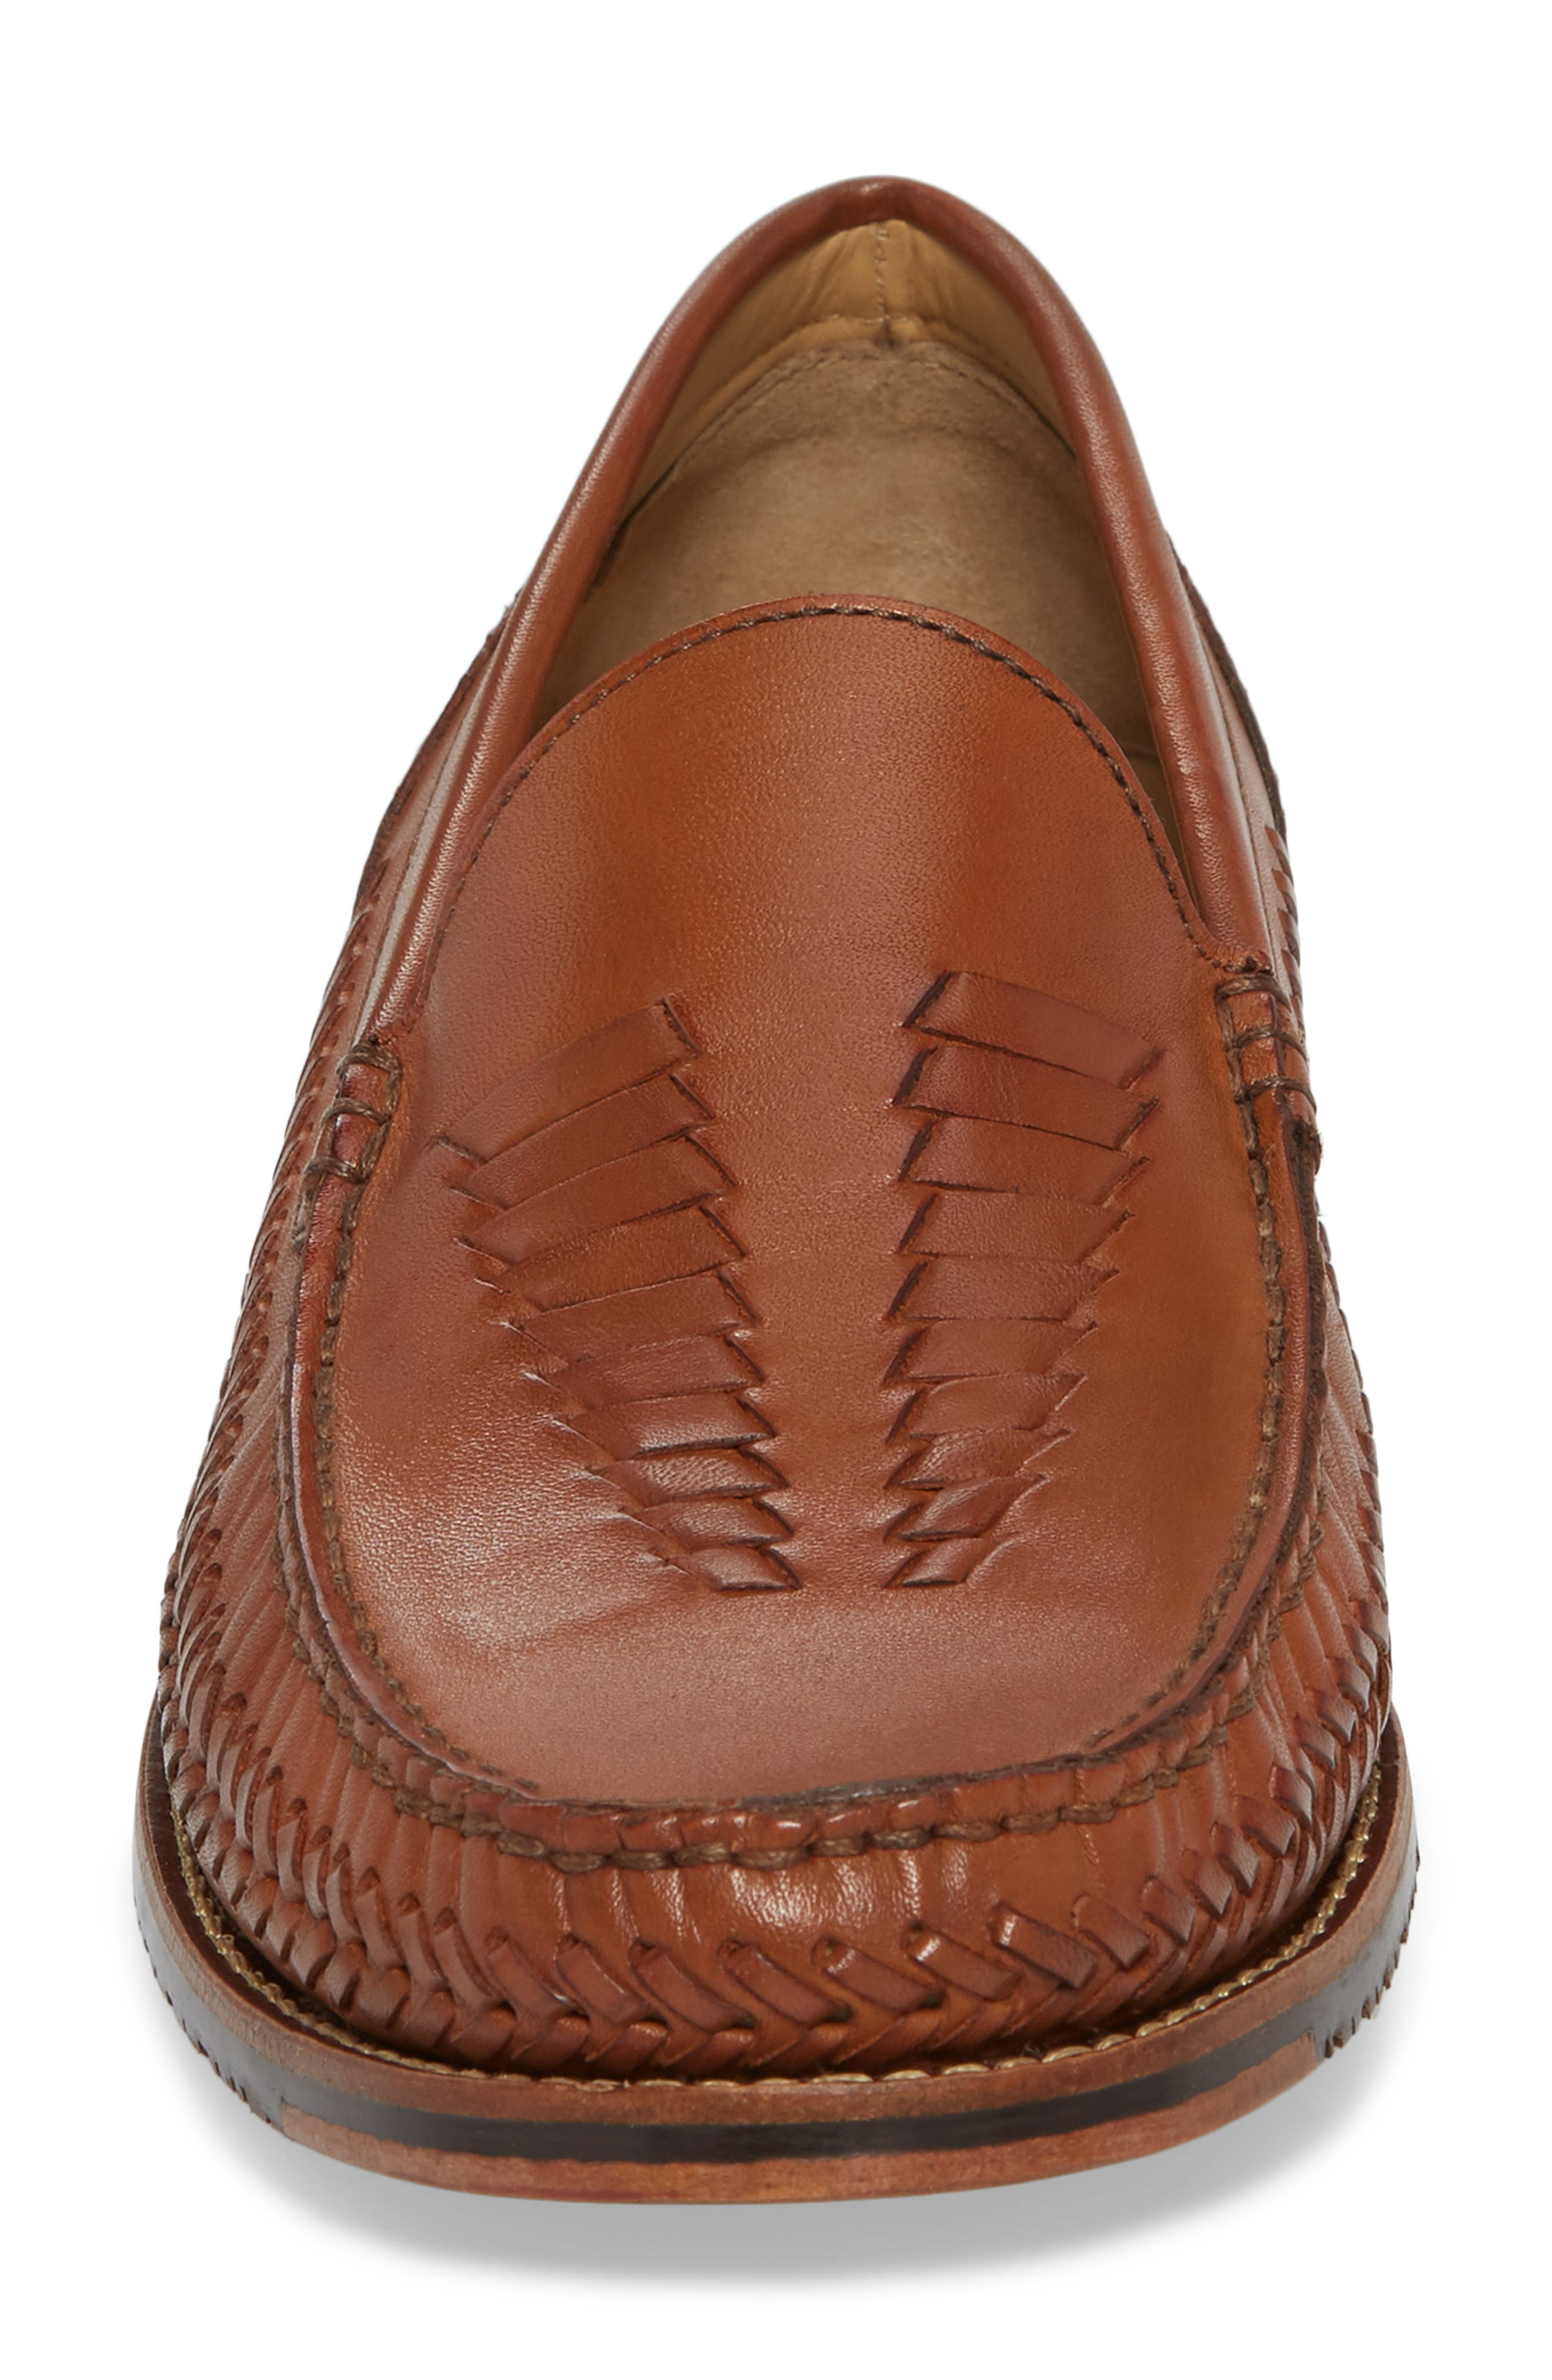 Hasslington Woven Venetian Loafer,                             Alternate thumbnail 4, color,                             TAN LEATHER